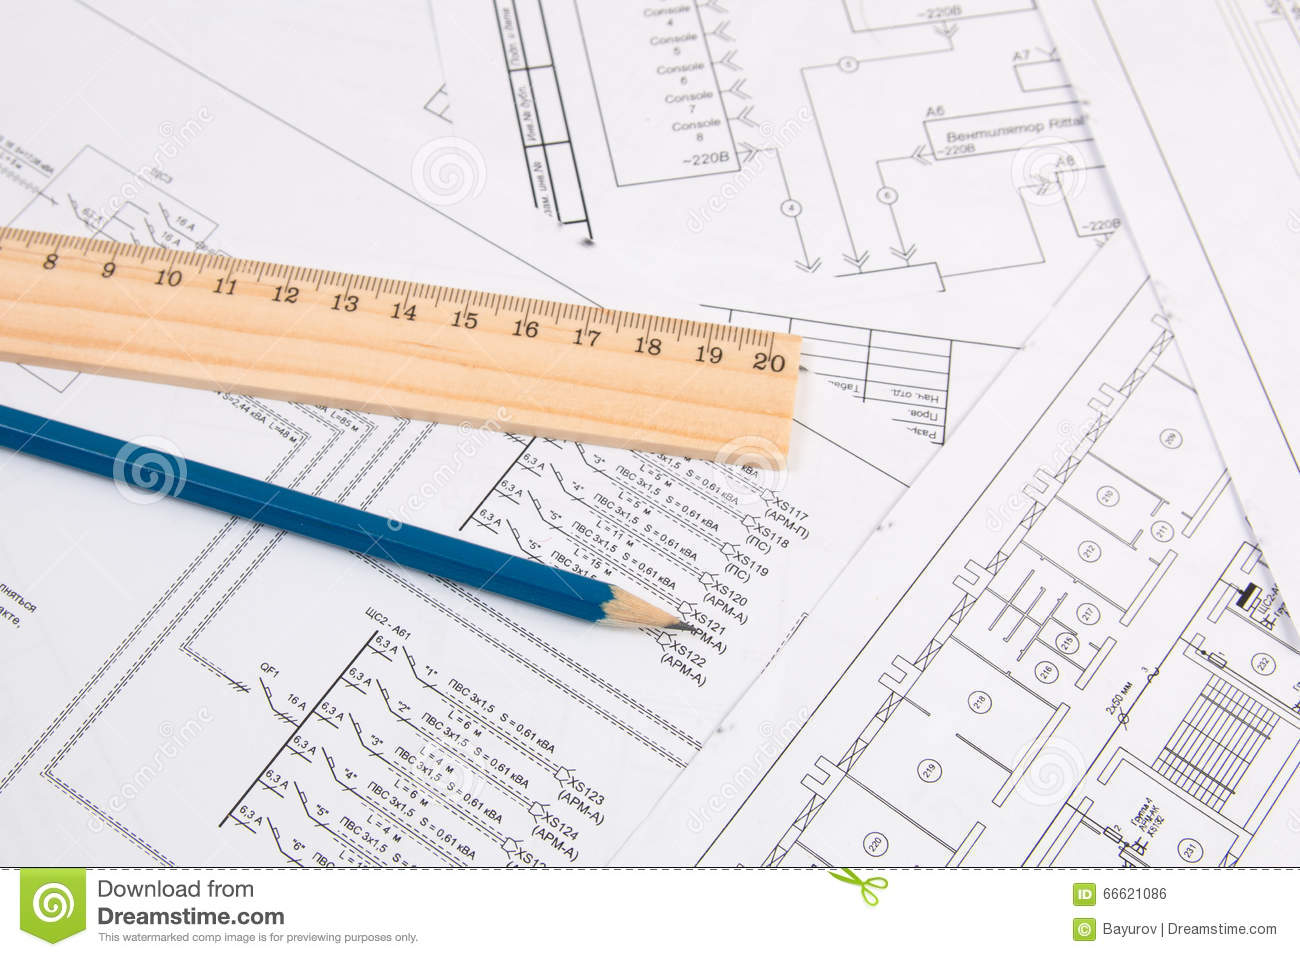 Electrical Engineering Drawings, Pencil And Ruler Stock Photo ... on